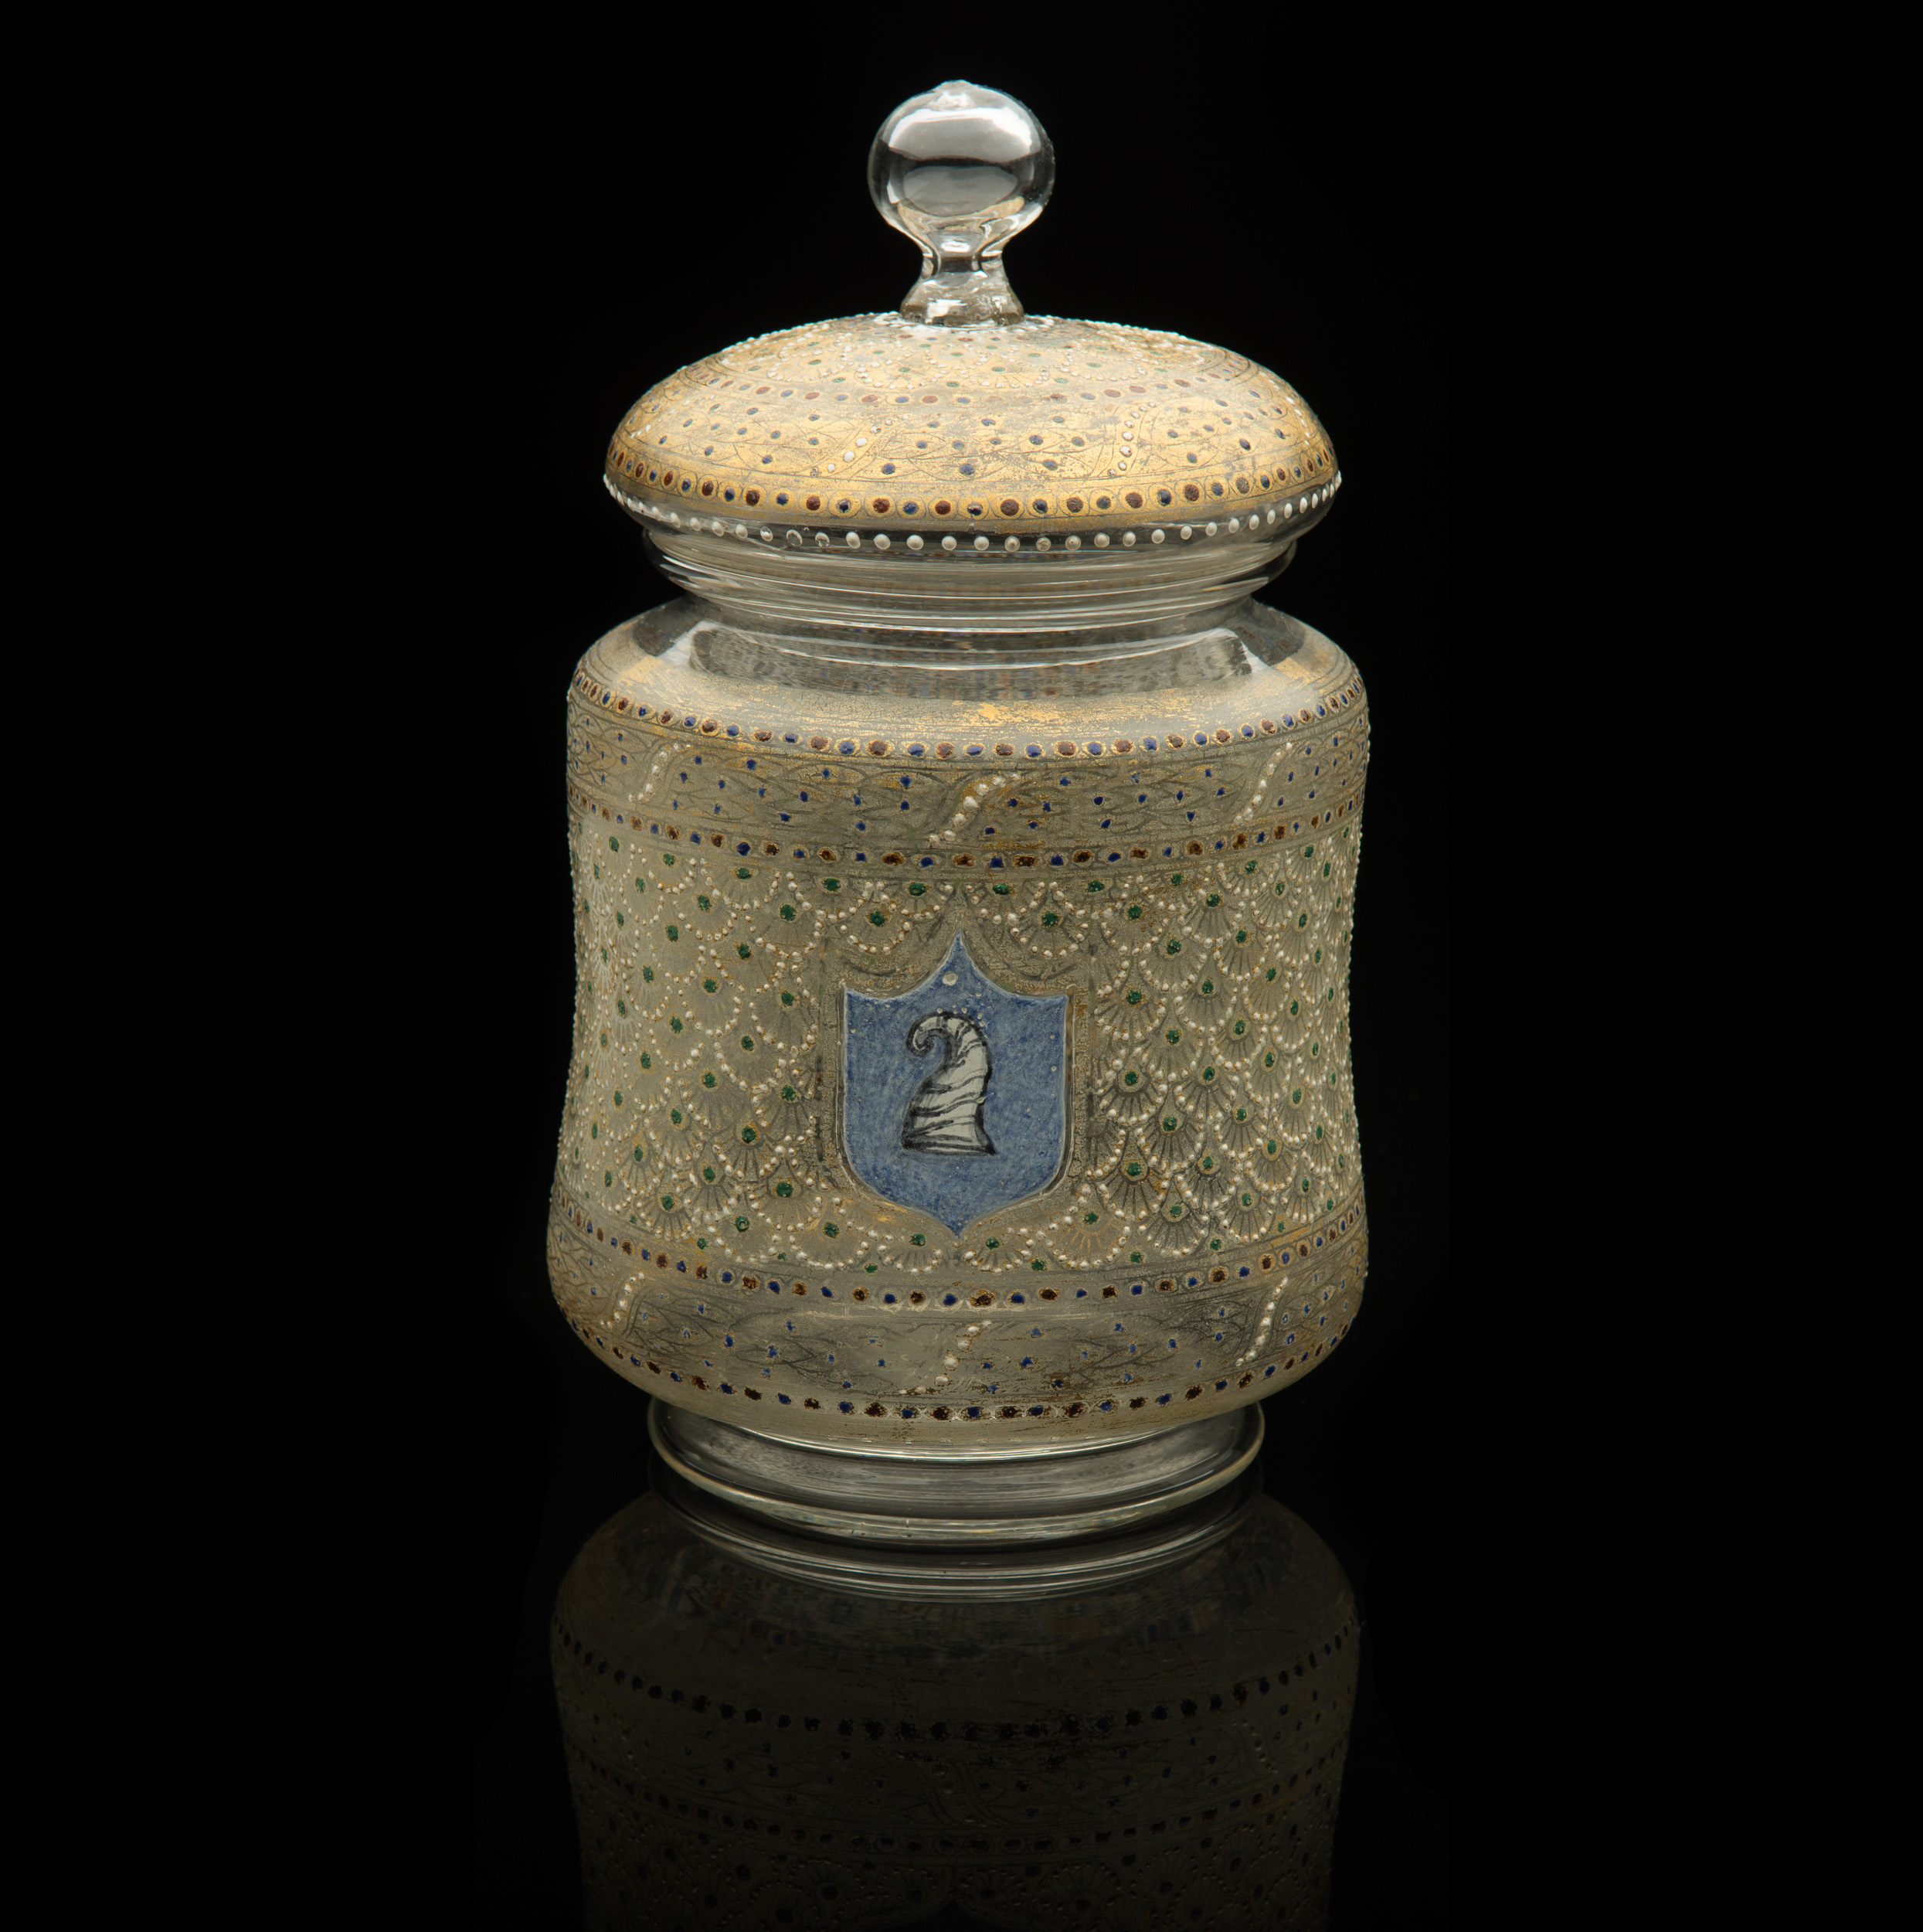 Salviati and Company, Lidded Jar with Doge Cap Emblem (circa 1885, glass and gilding, 8 3/4 x 5 x 5inches), VV.481